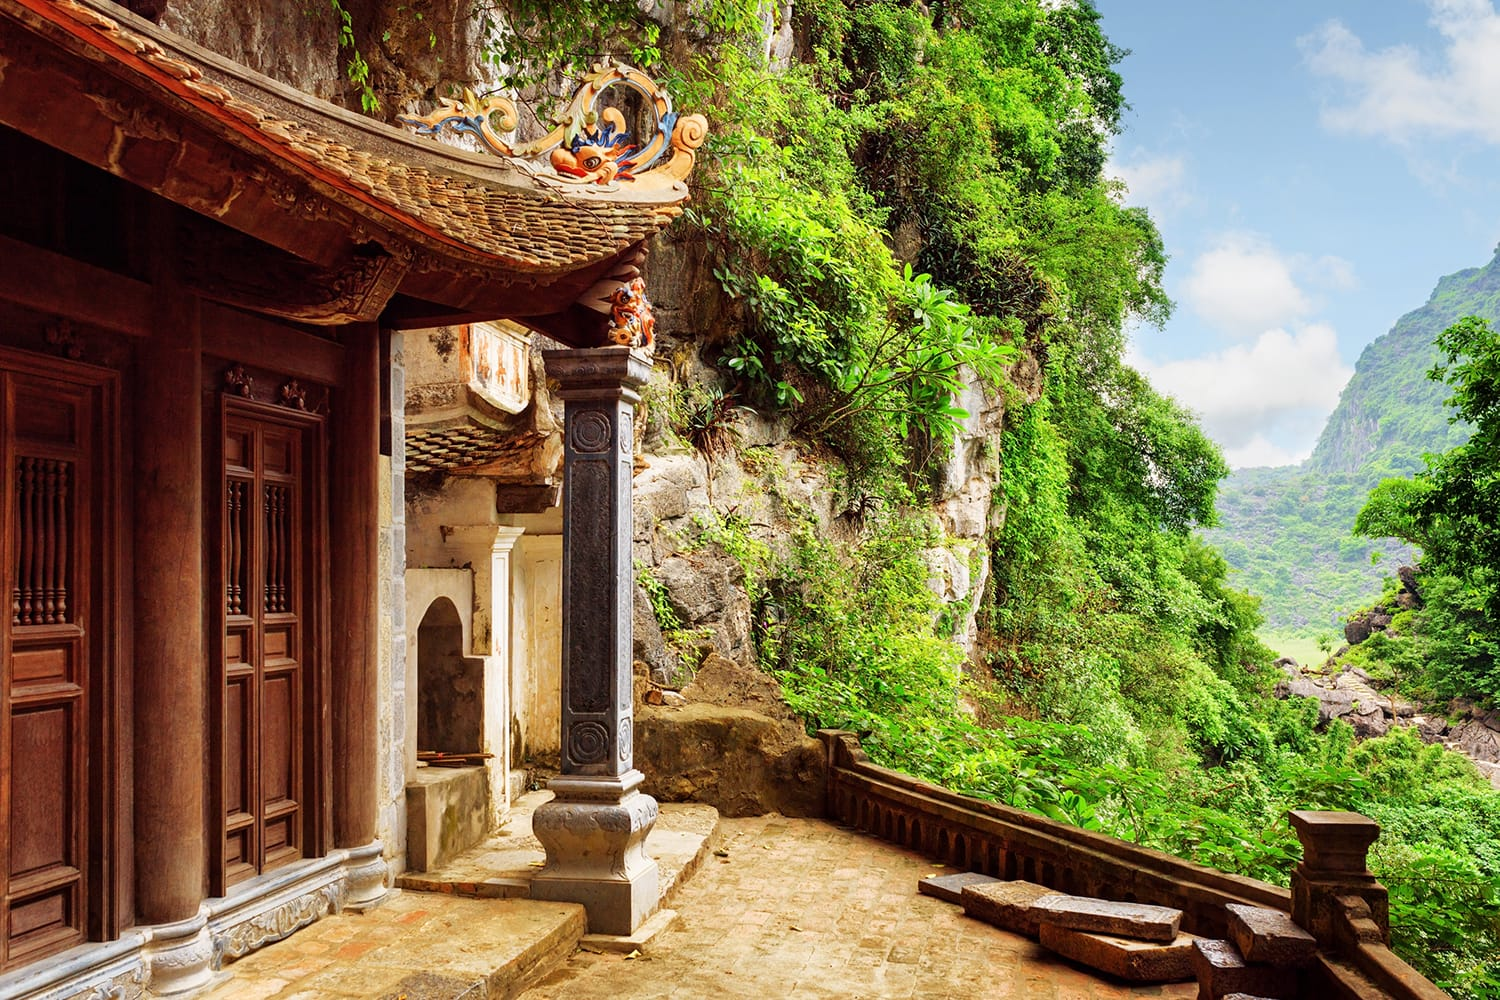 Scenic view of the Bich Dong Pagoda at Ninh Binh Province in Vietnam